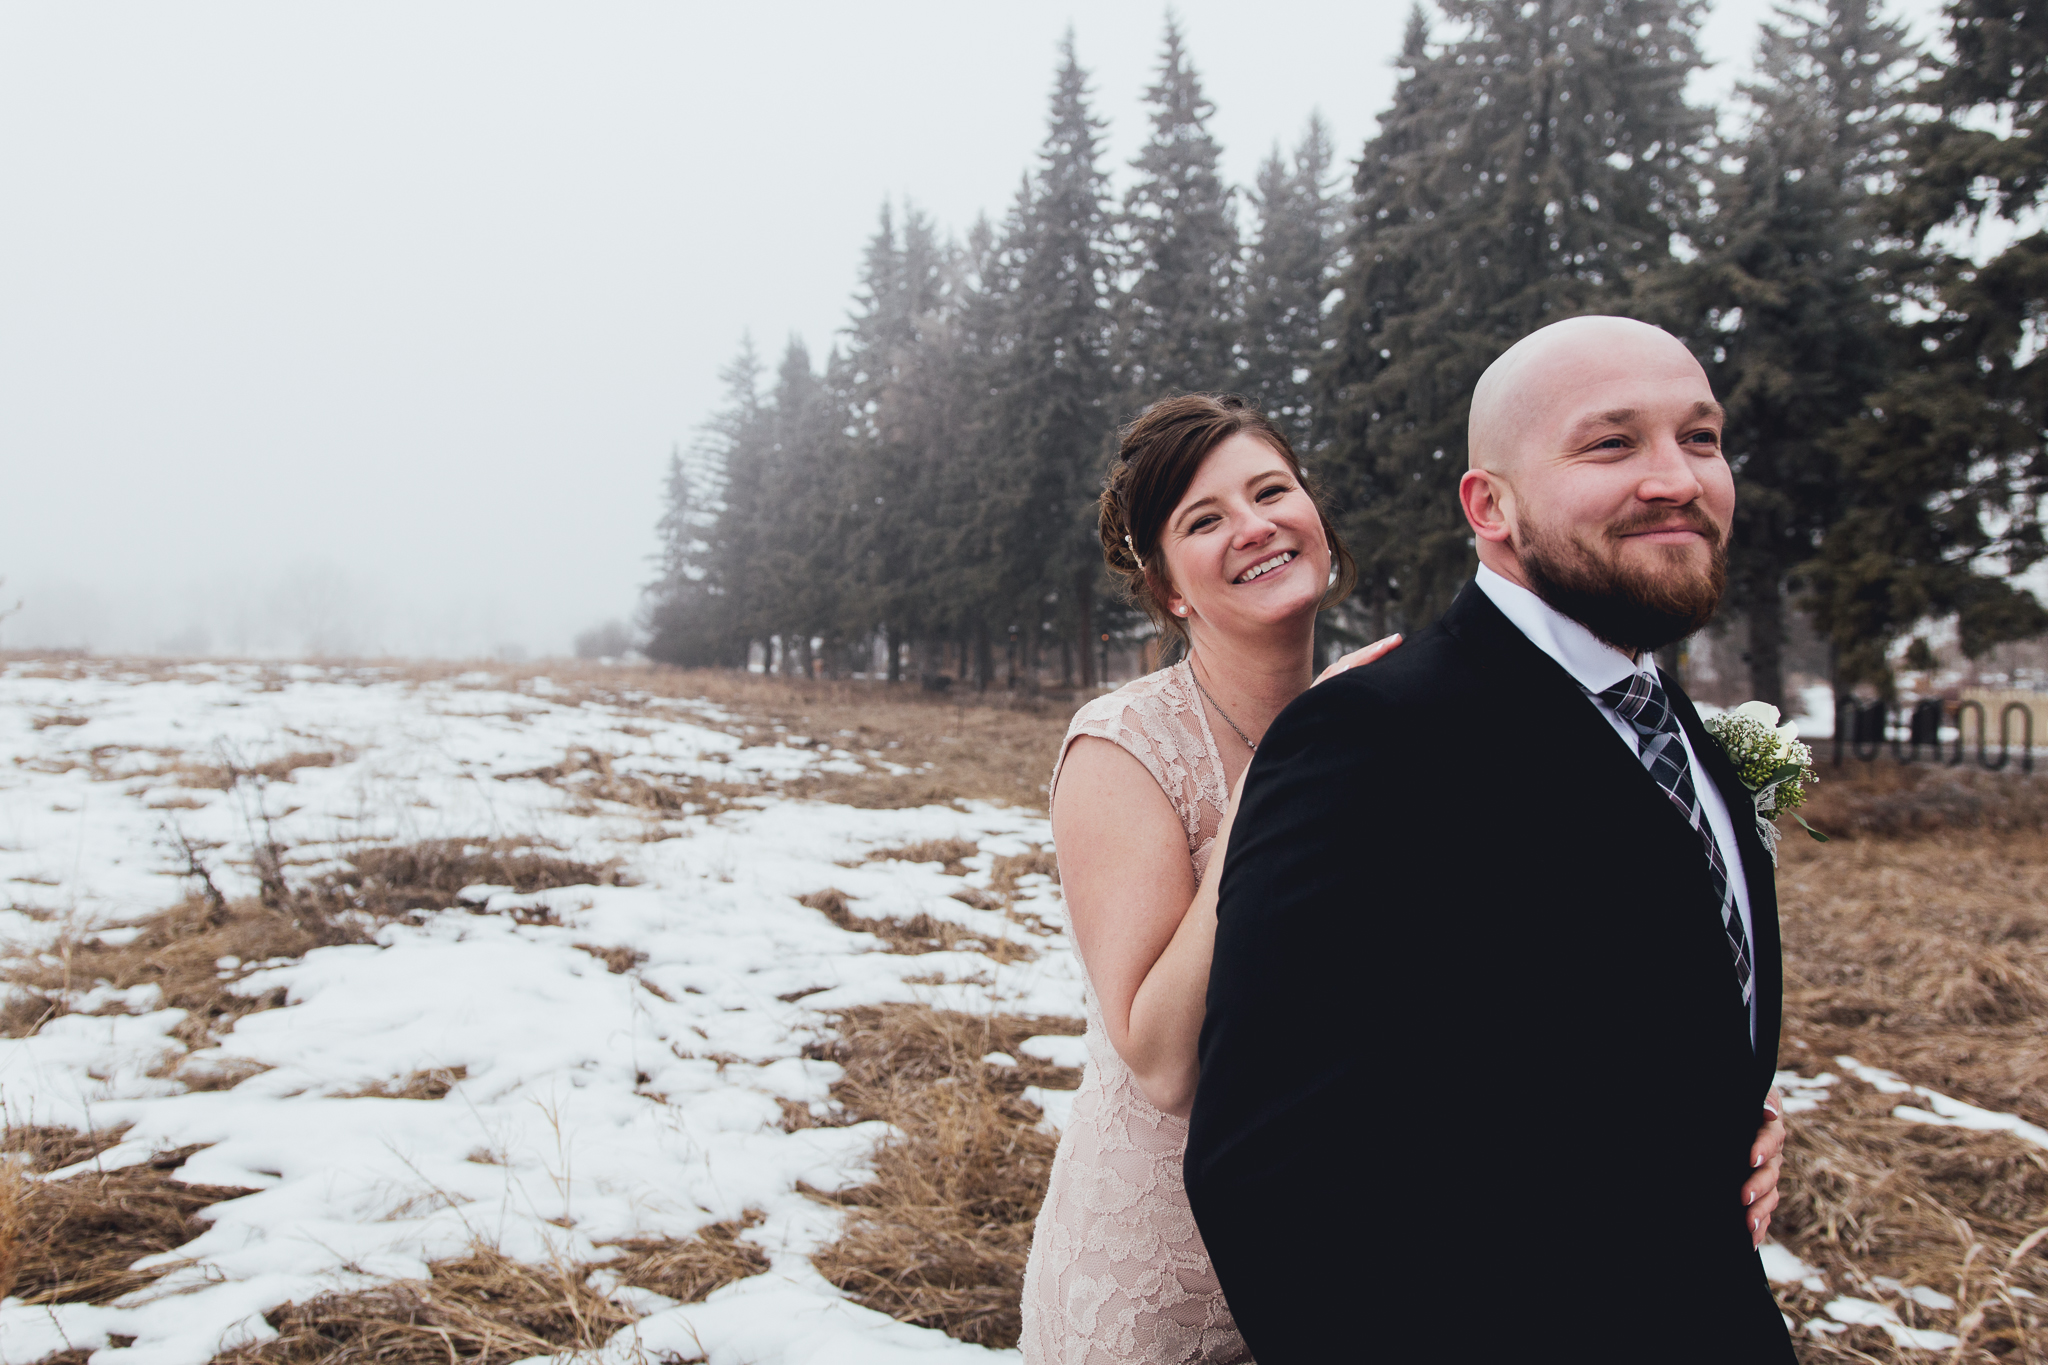 Bride and groom laughing in foggy field during intimate winter wedding at Bow Valley Ranche